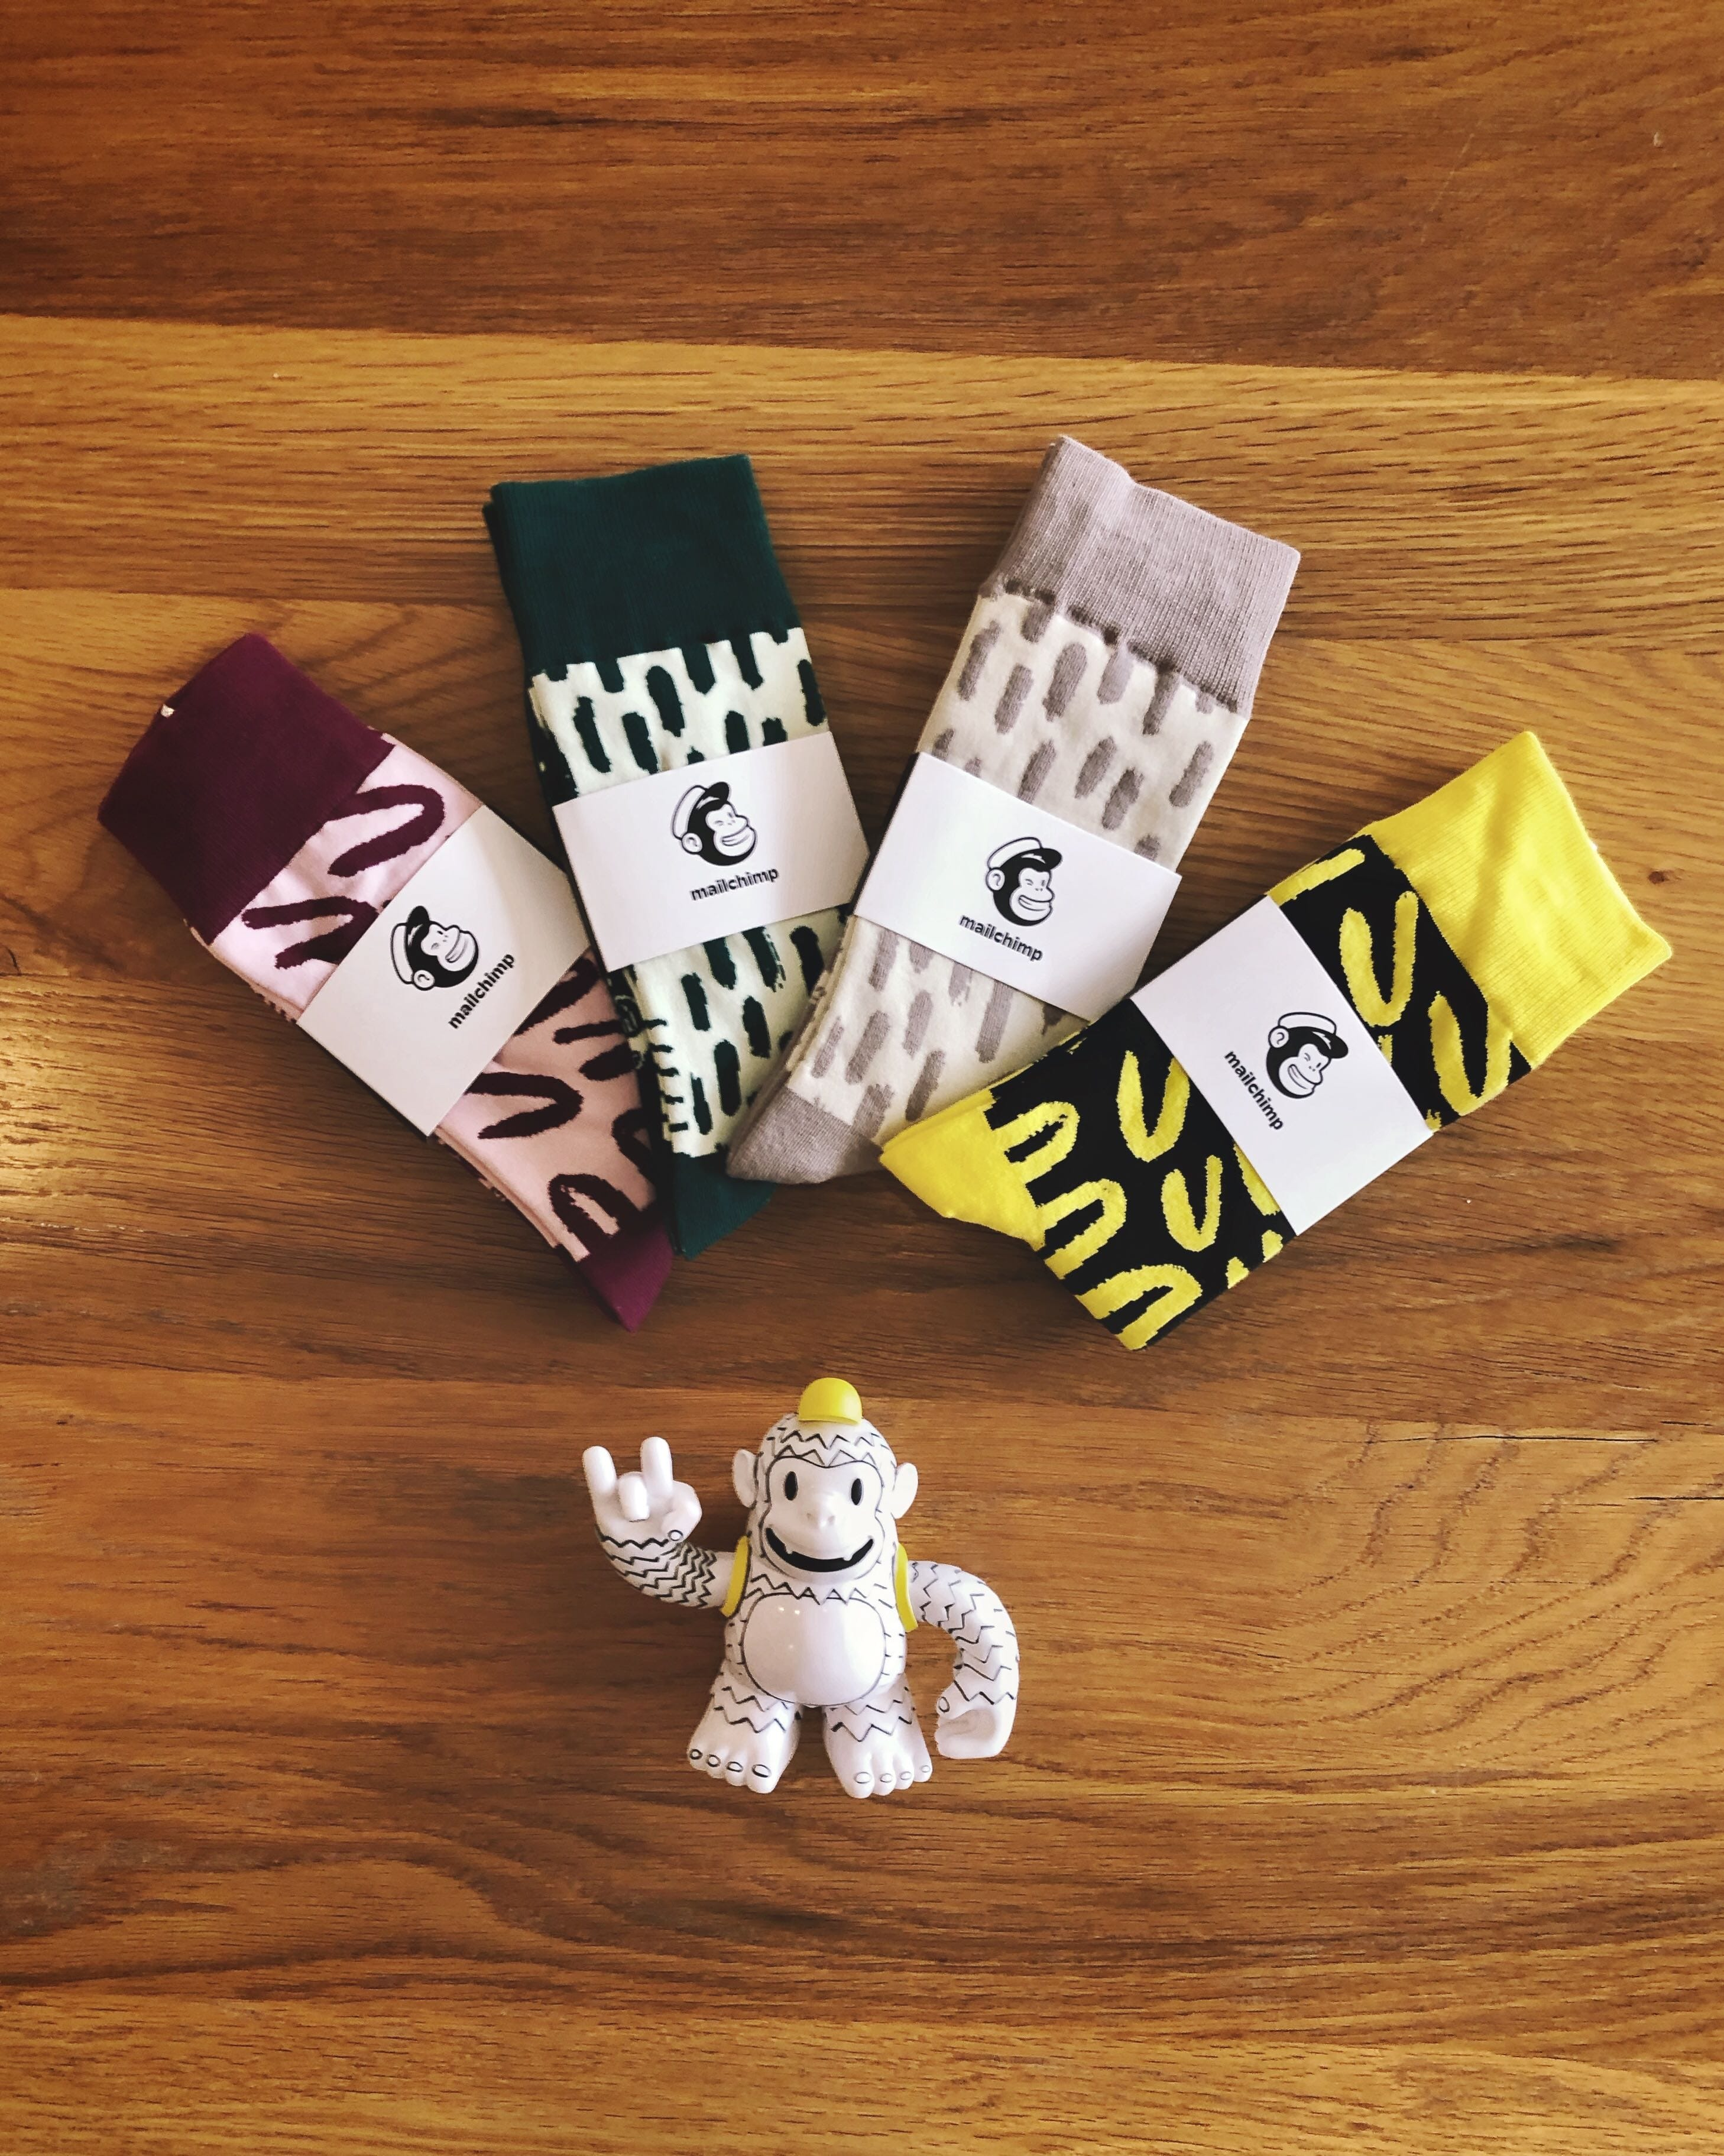 An assortment of Mailchimp swag including socks and a monkey.